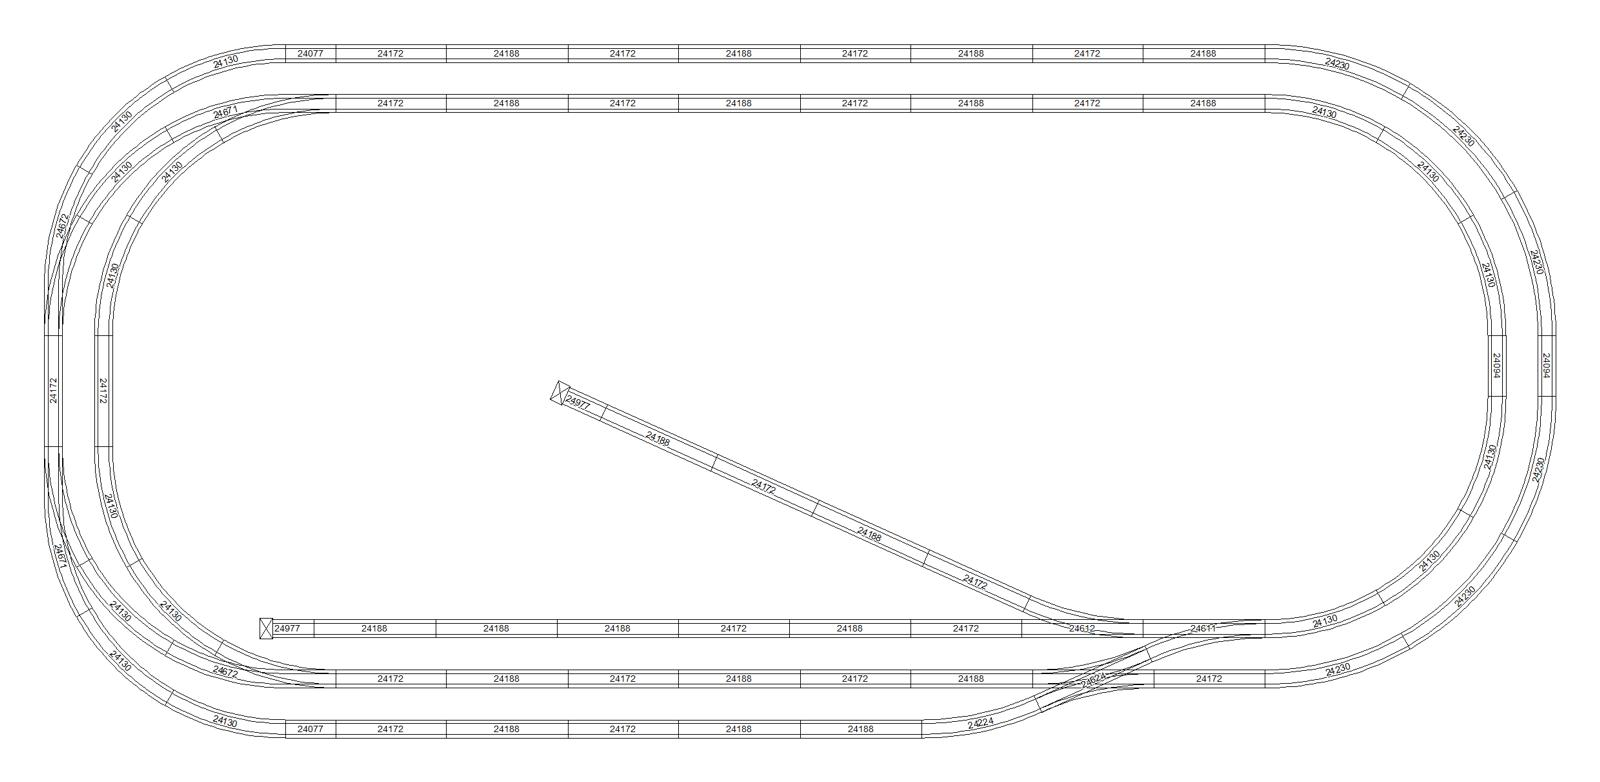 Large Train Layouts Wiring